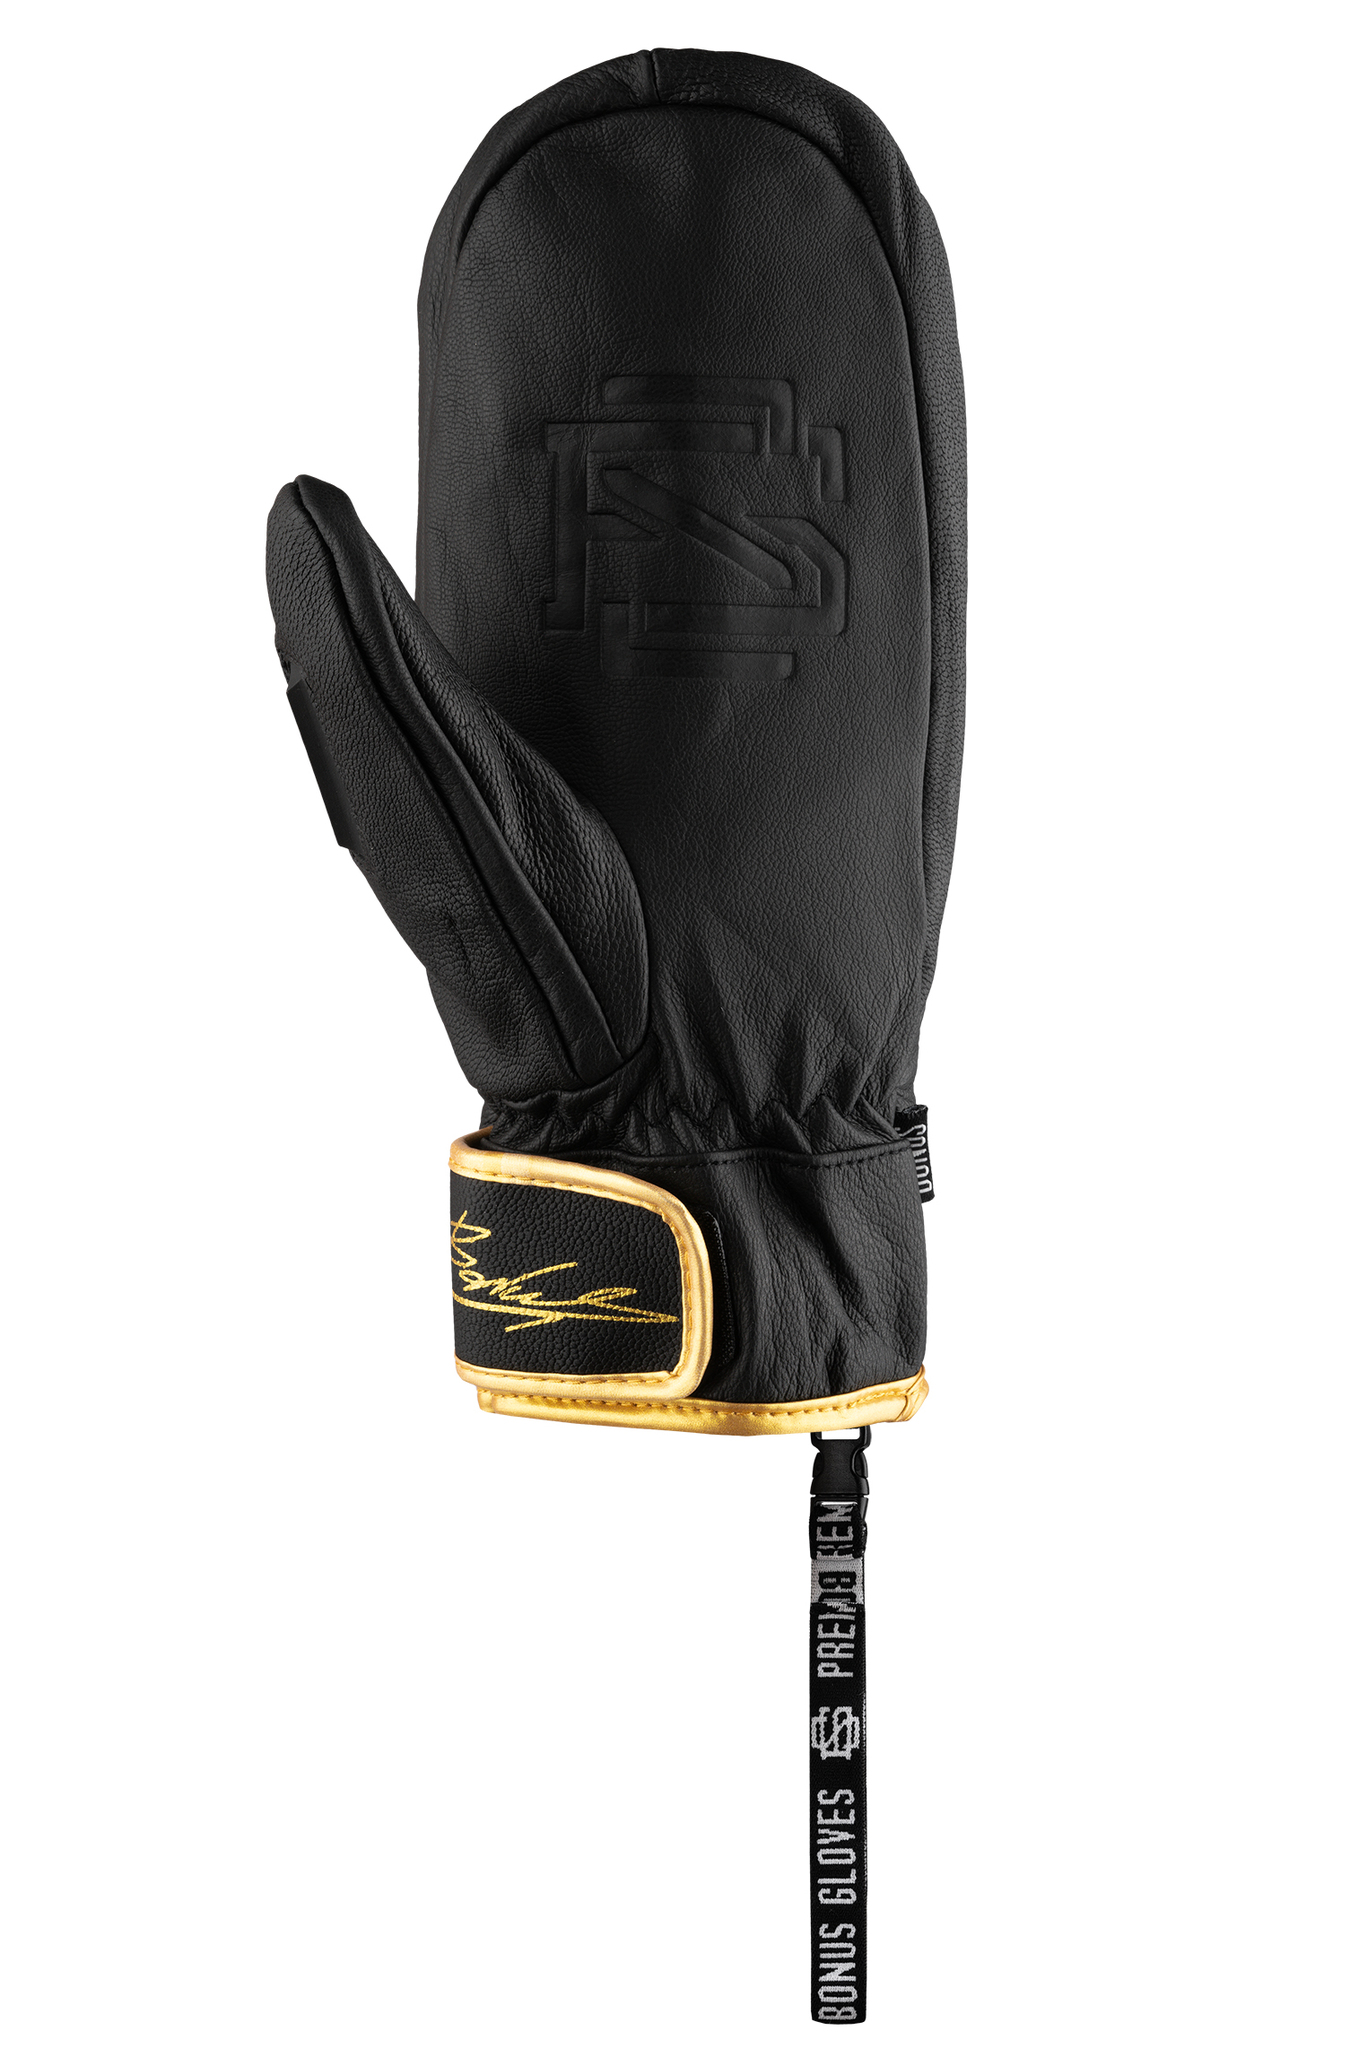 Варежки BONUS GLOVES - LEATHER Black 19/20